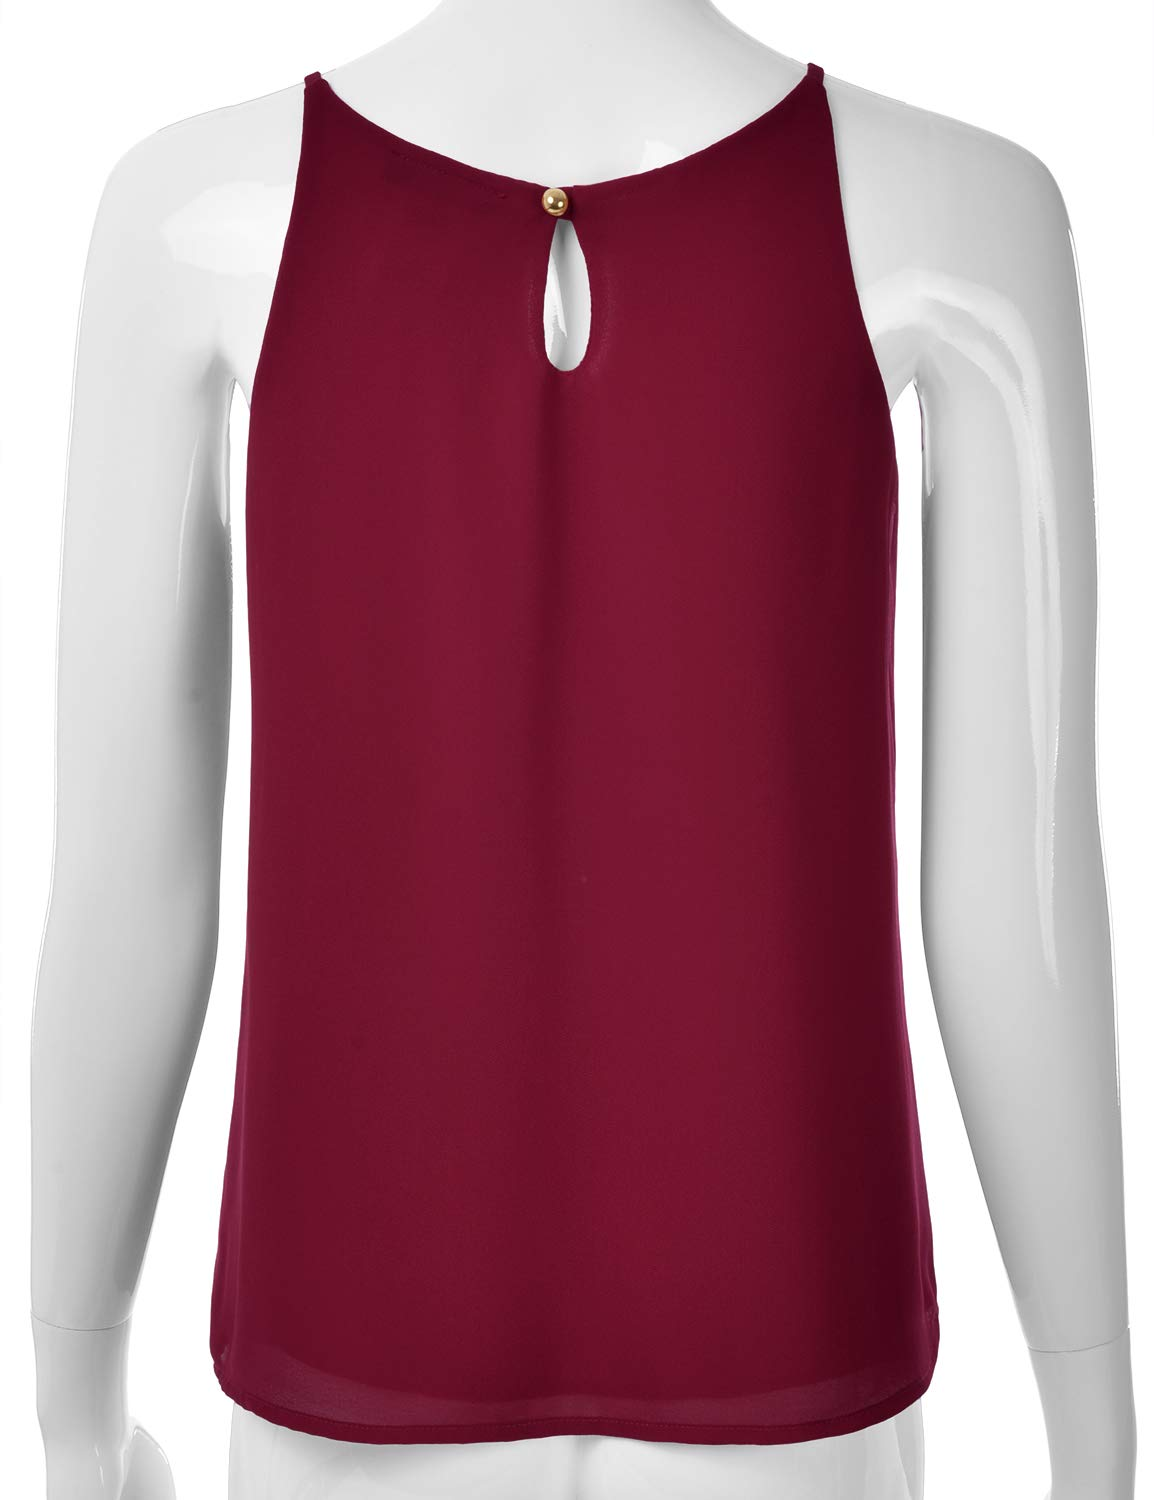 EIMIN Women's Crewneck Pleated Front Double Layered Chiffon Cami Tank Top Burgundy M by EIMIN (Image #3)